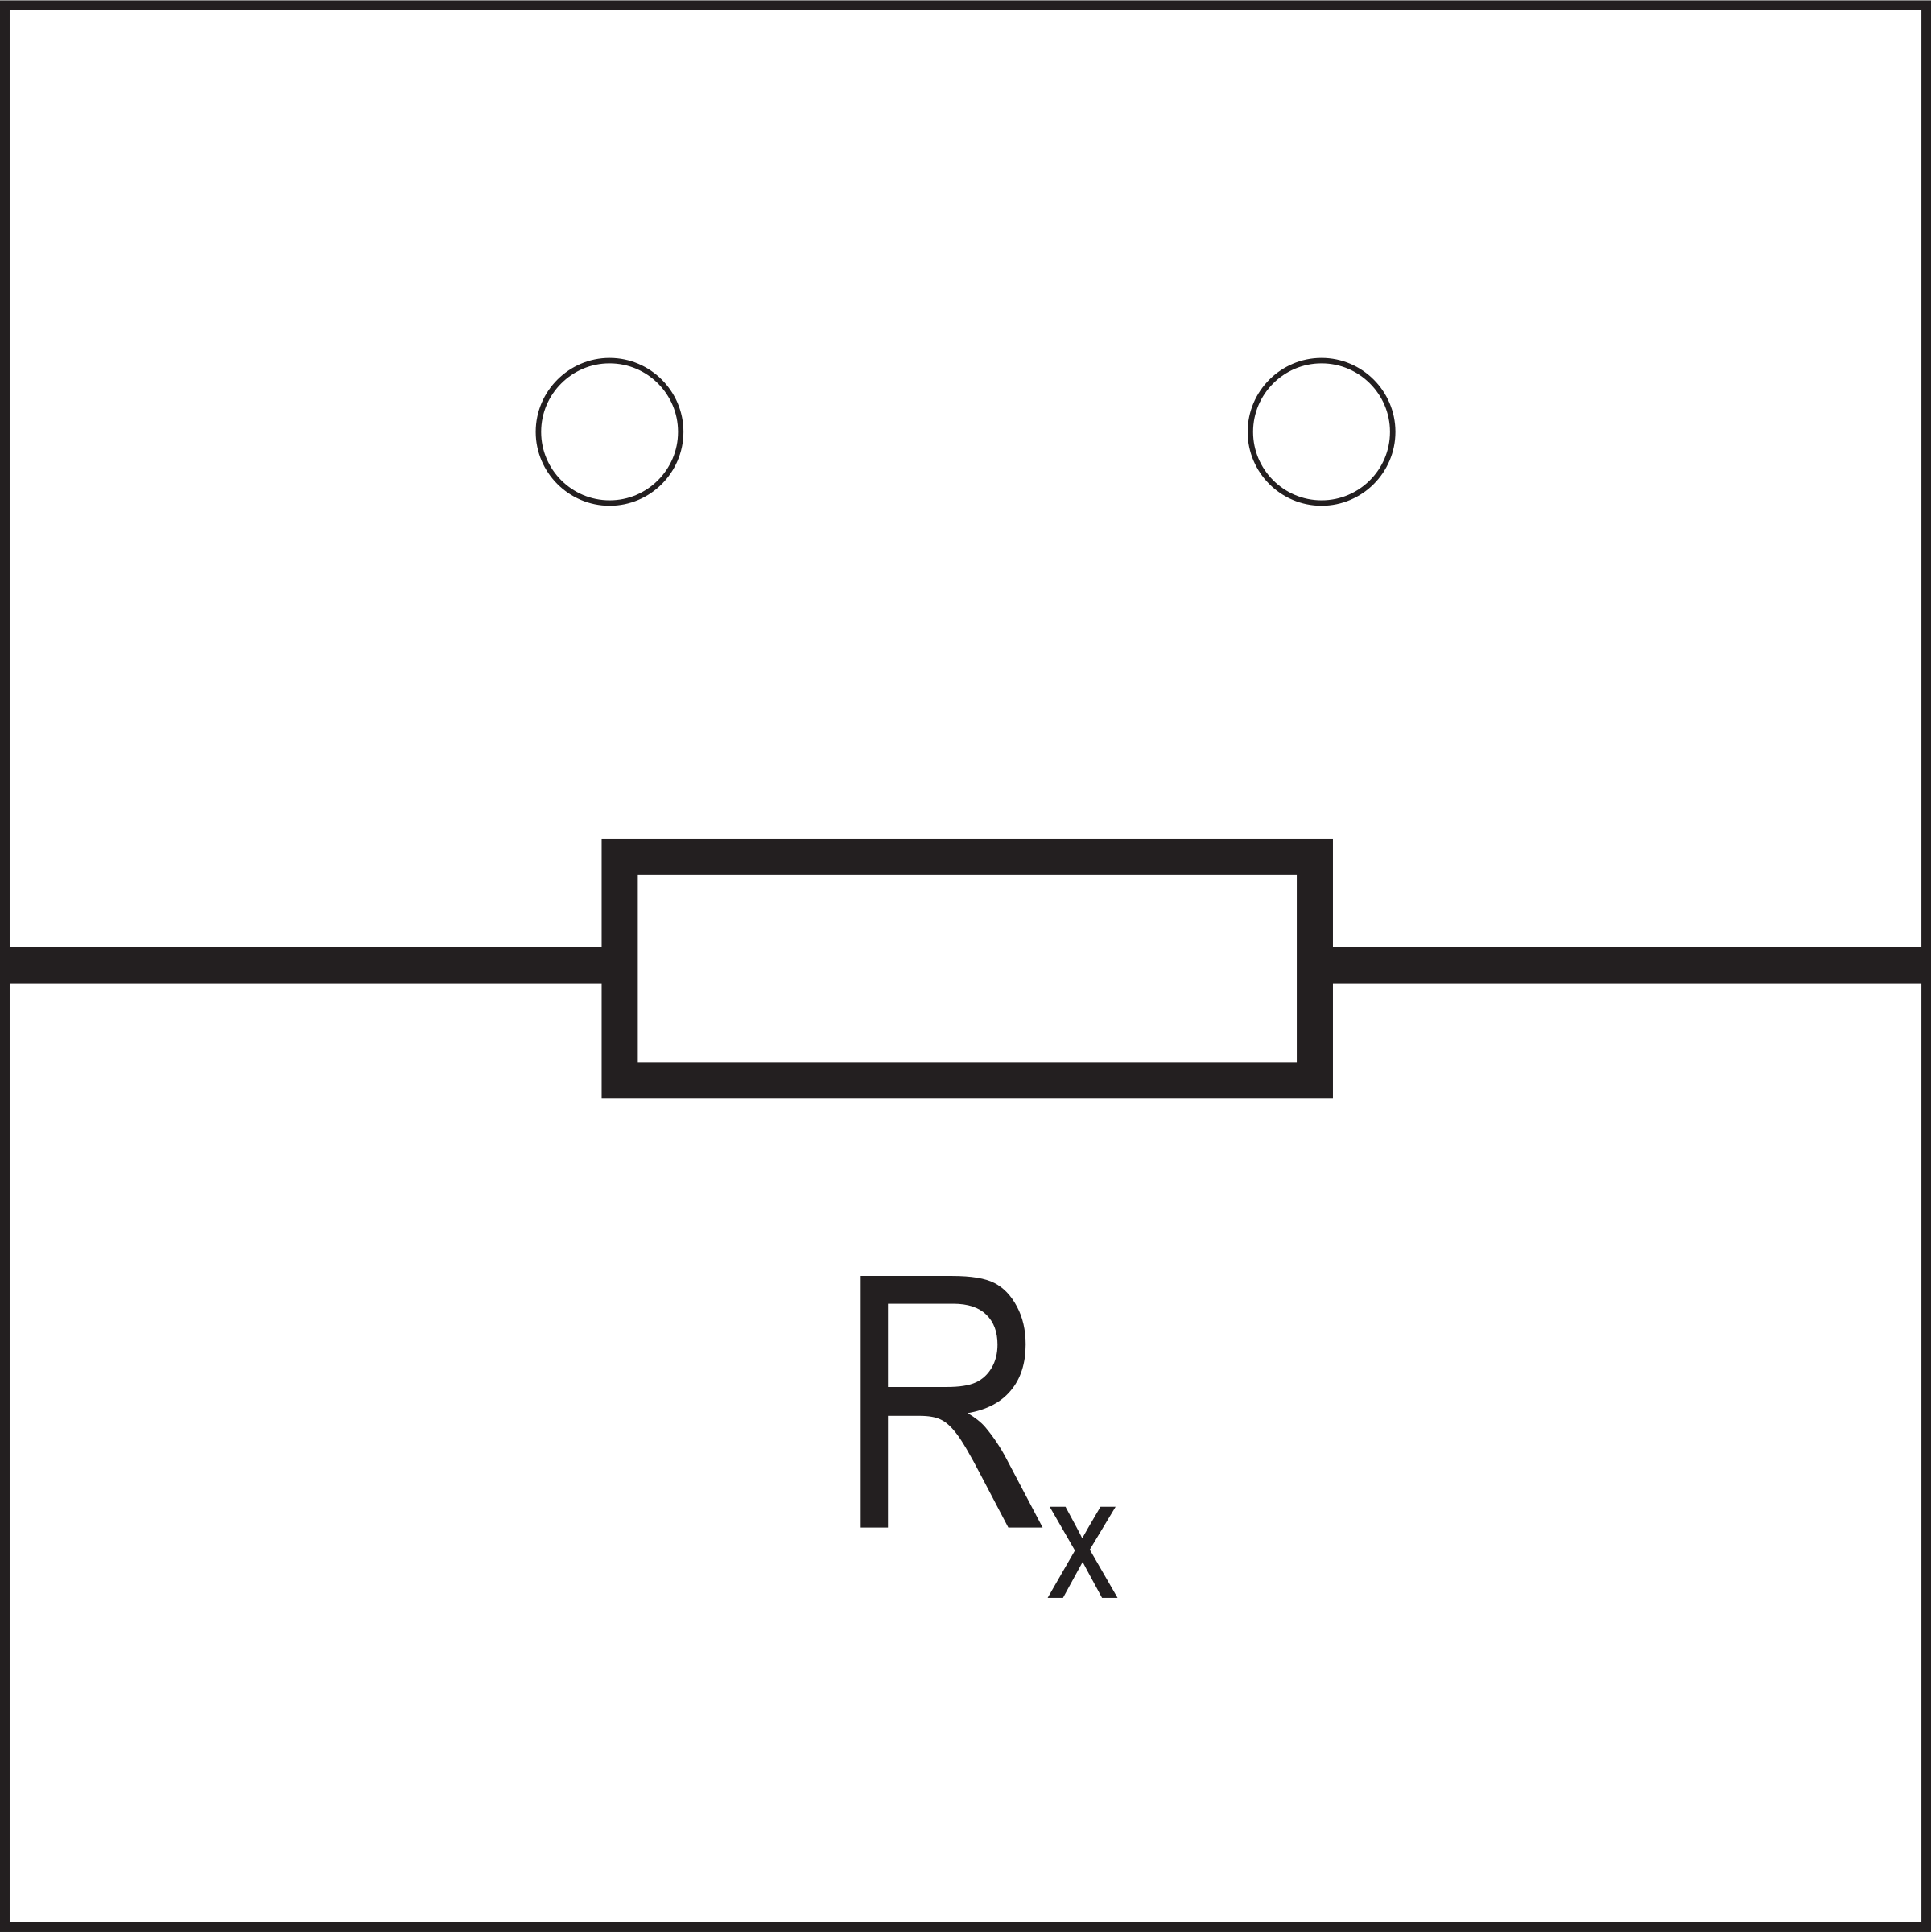 Plug-In Resistor Block by Understanding-Electronics